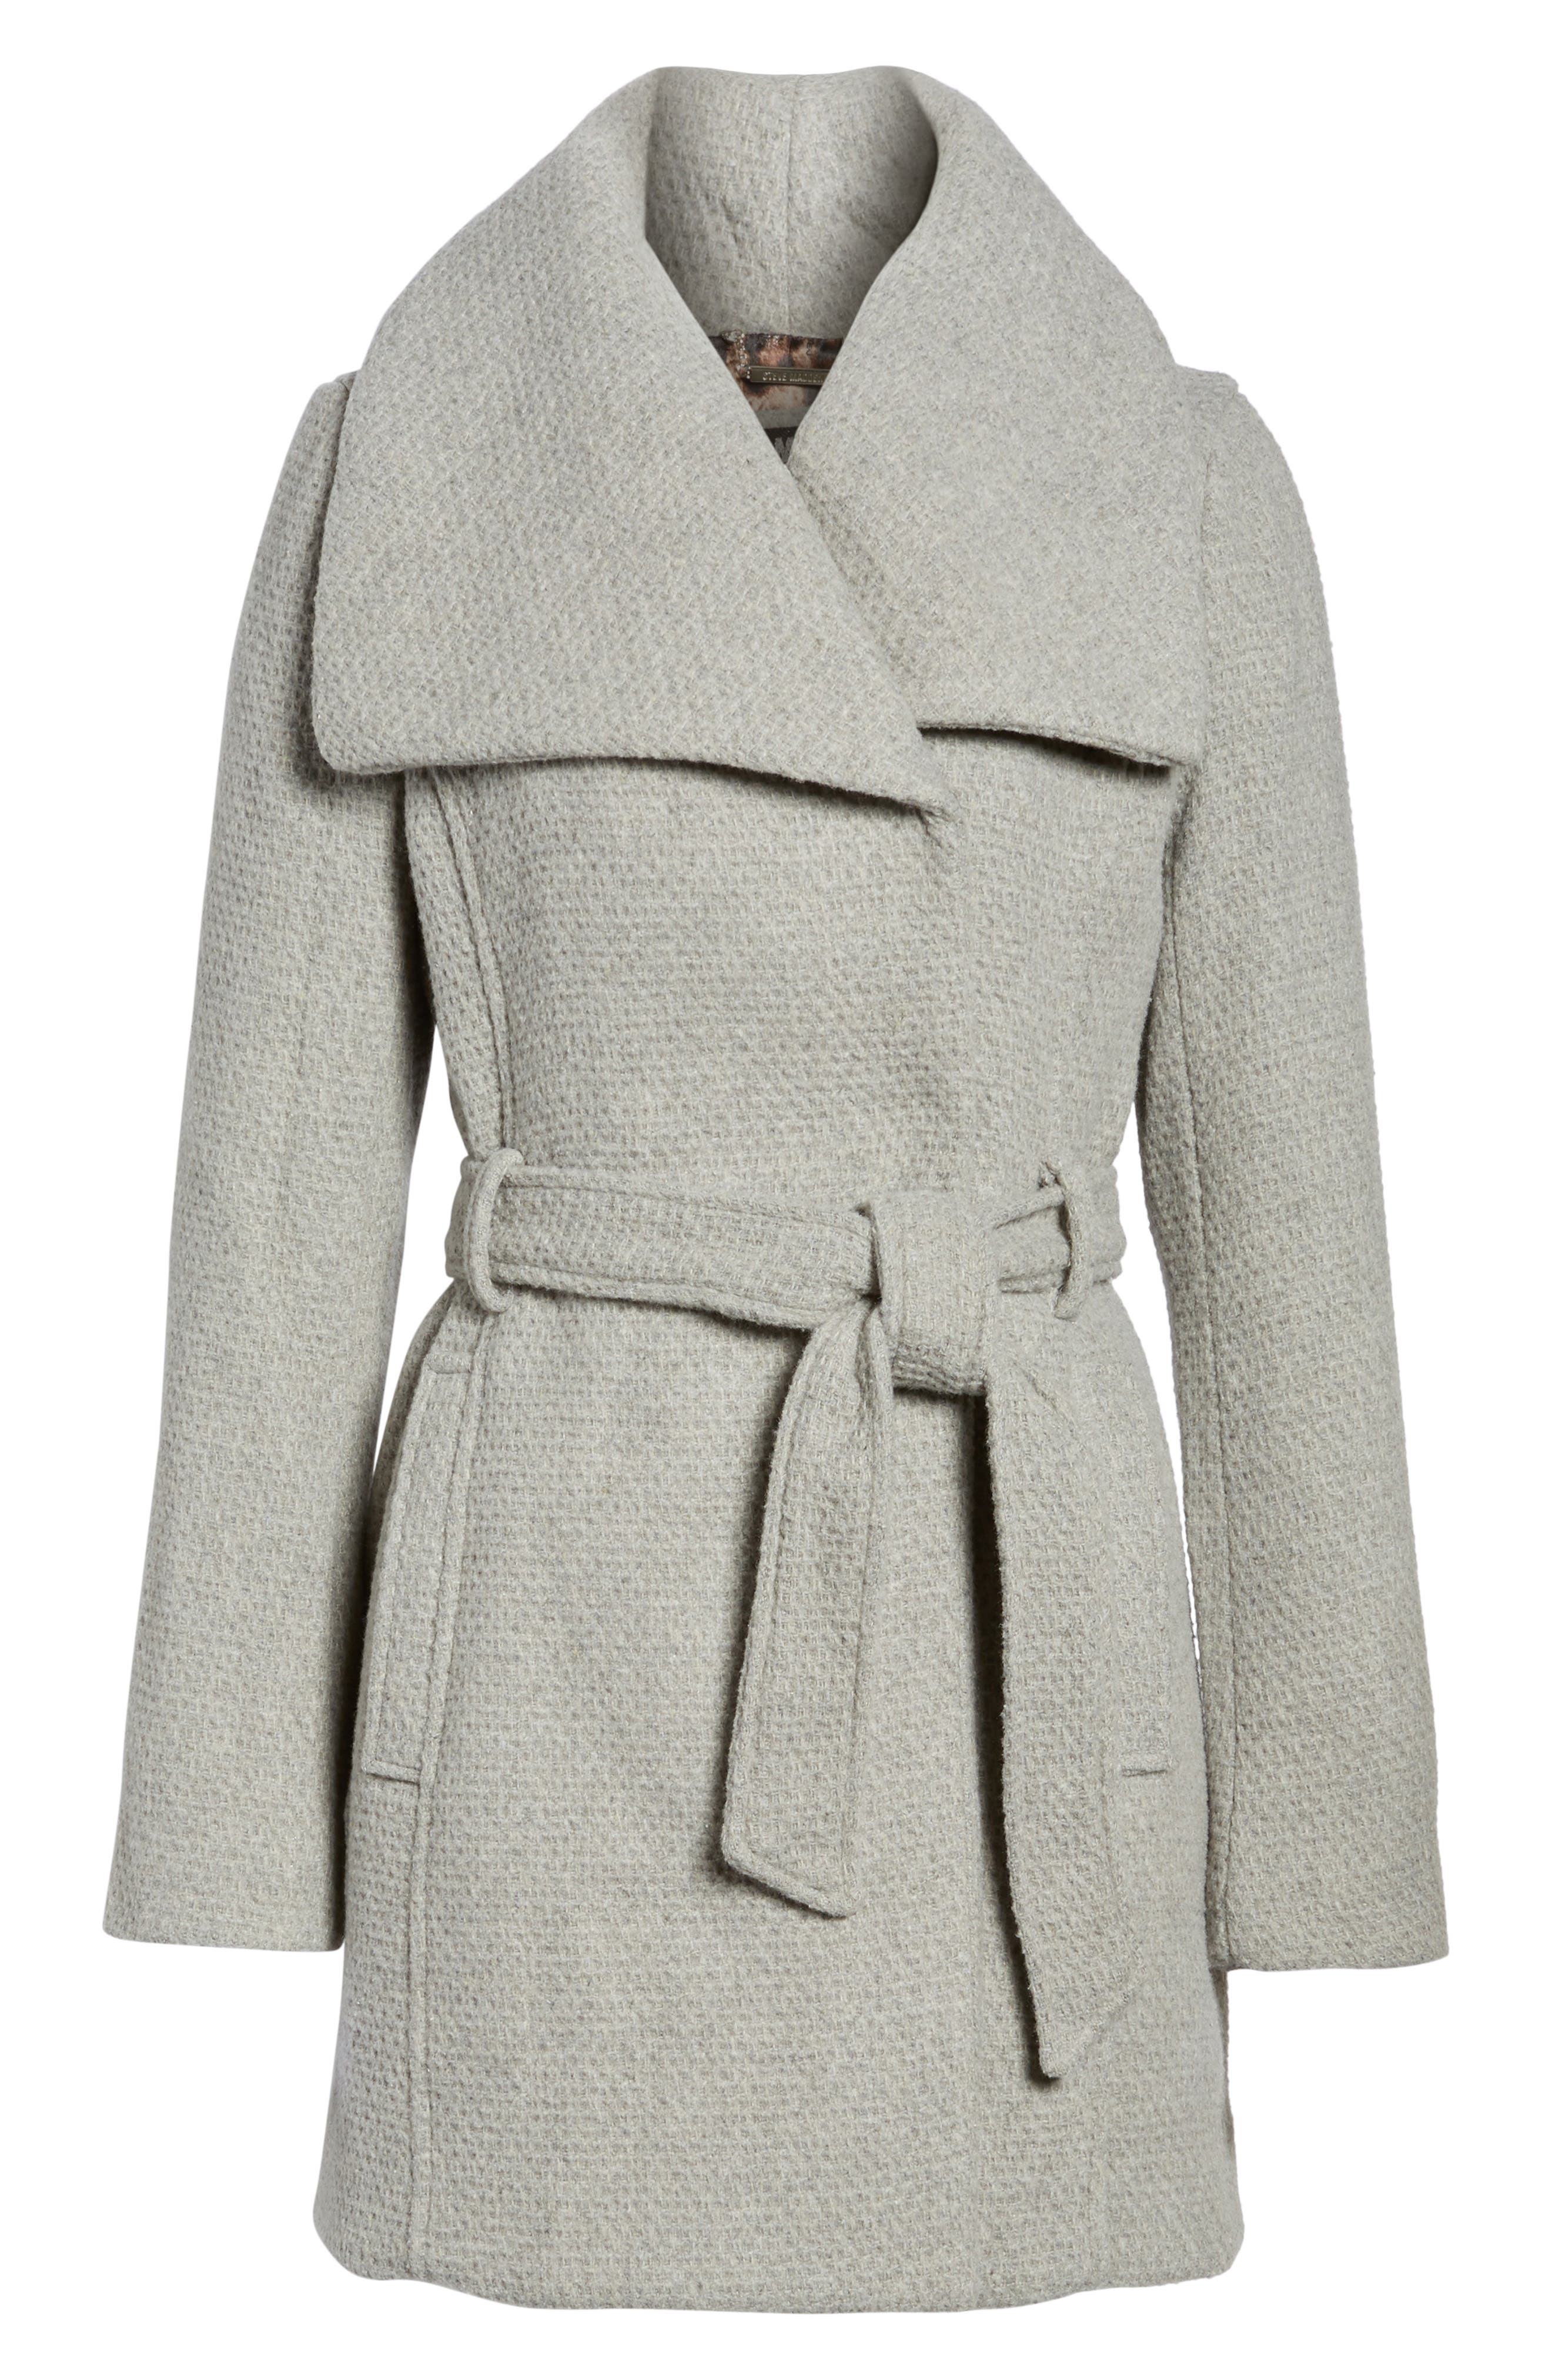 Belted Waffle Woven Coat,                             Alternate thumbnail 5, color,                             038